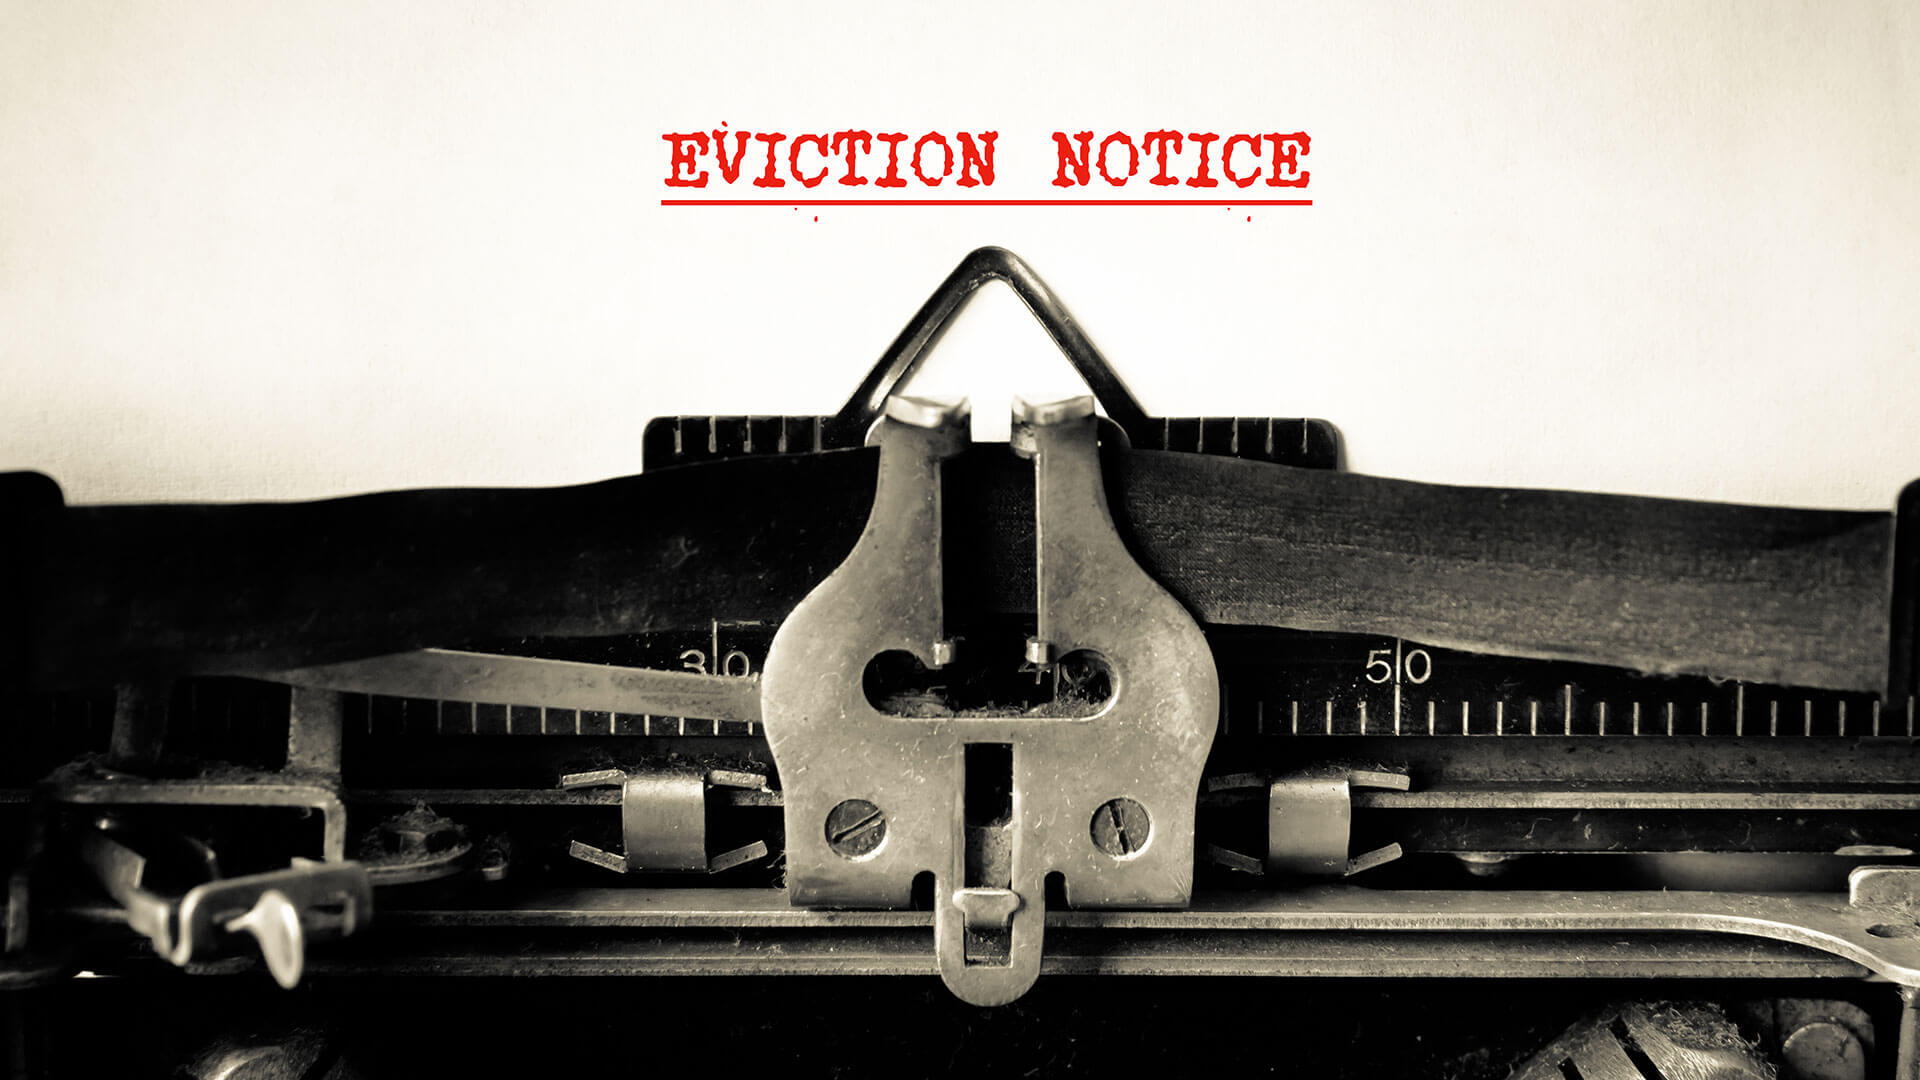 Typing eviction notice